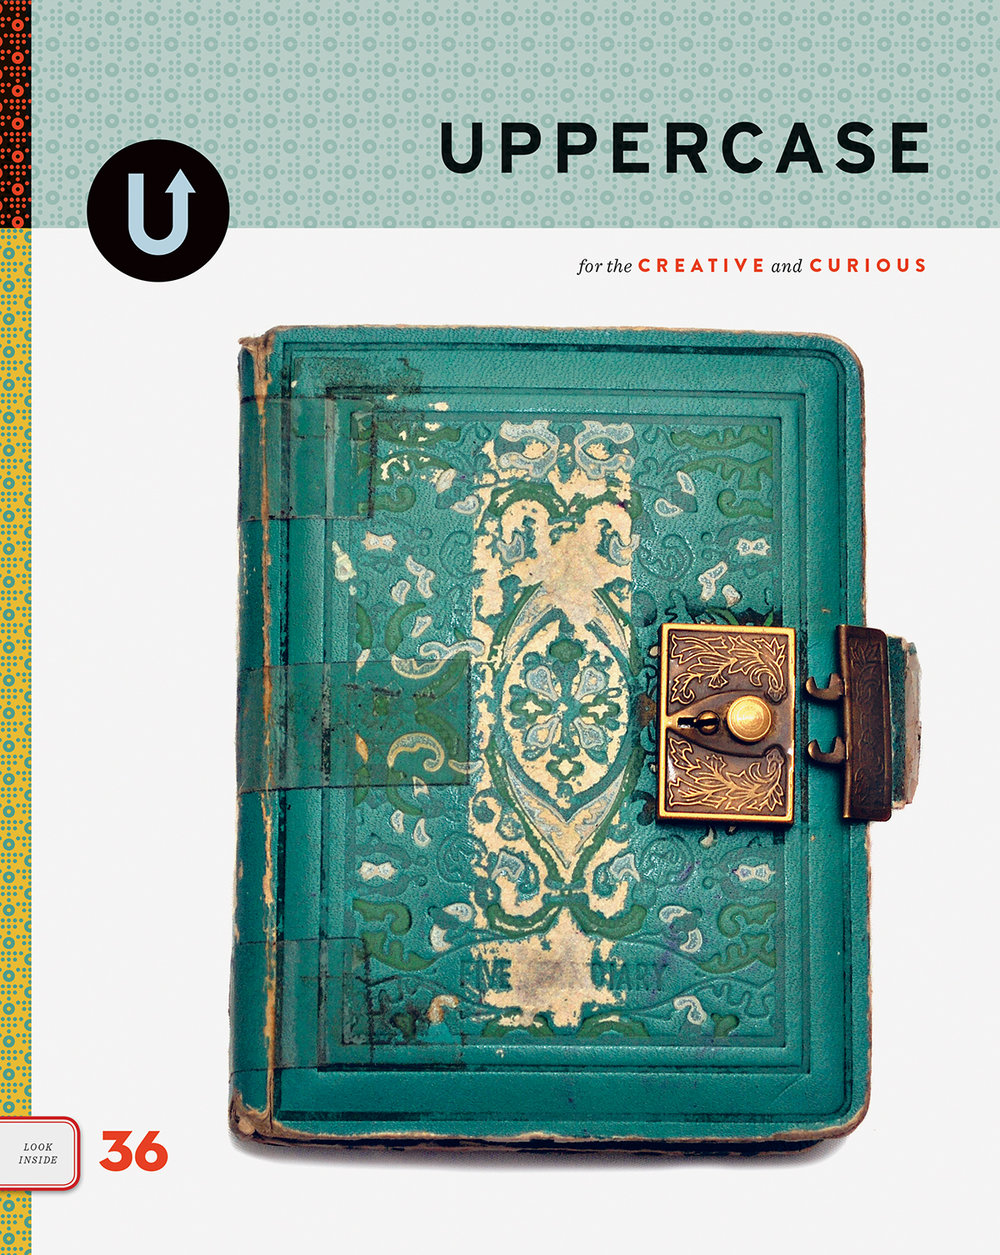 UPPERCASE 36 COVER preview web.jpg